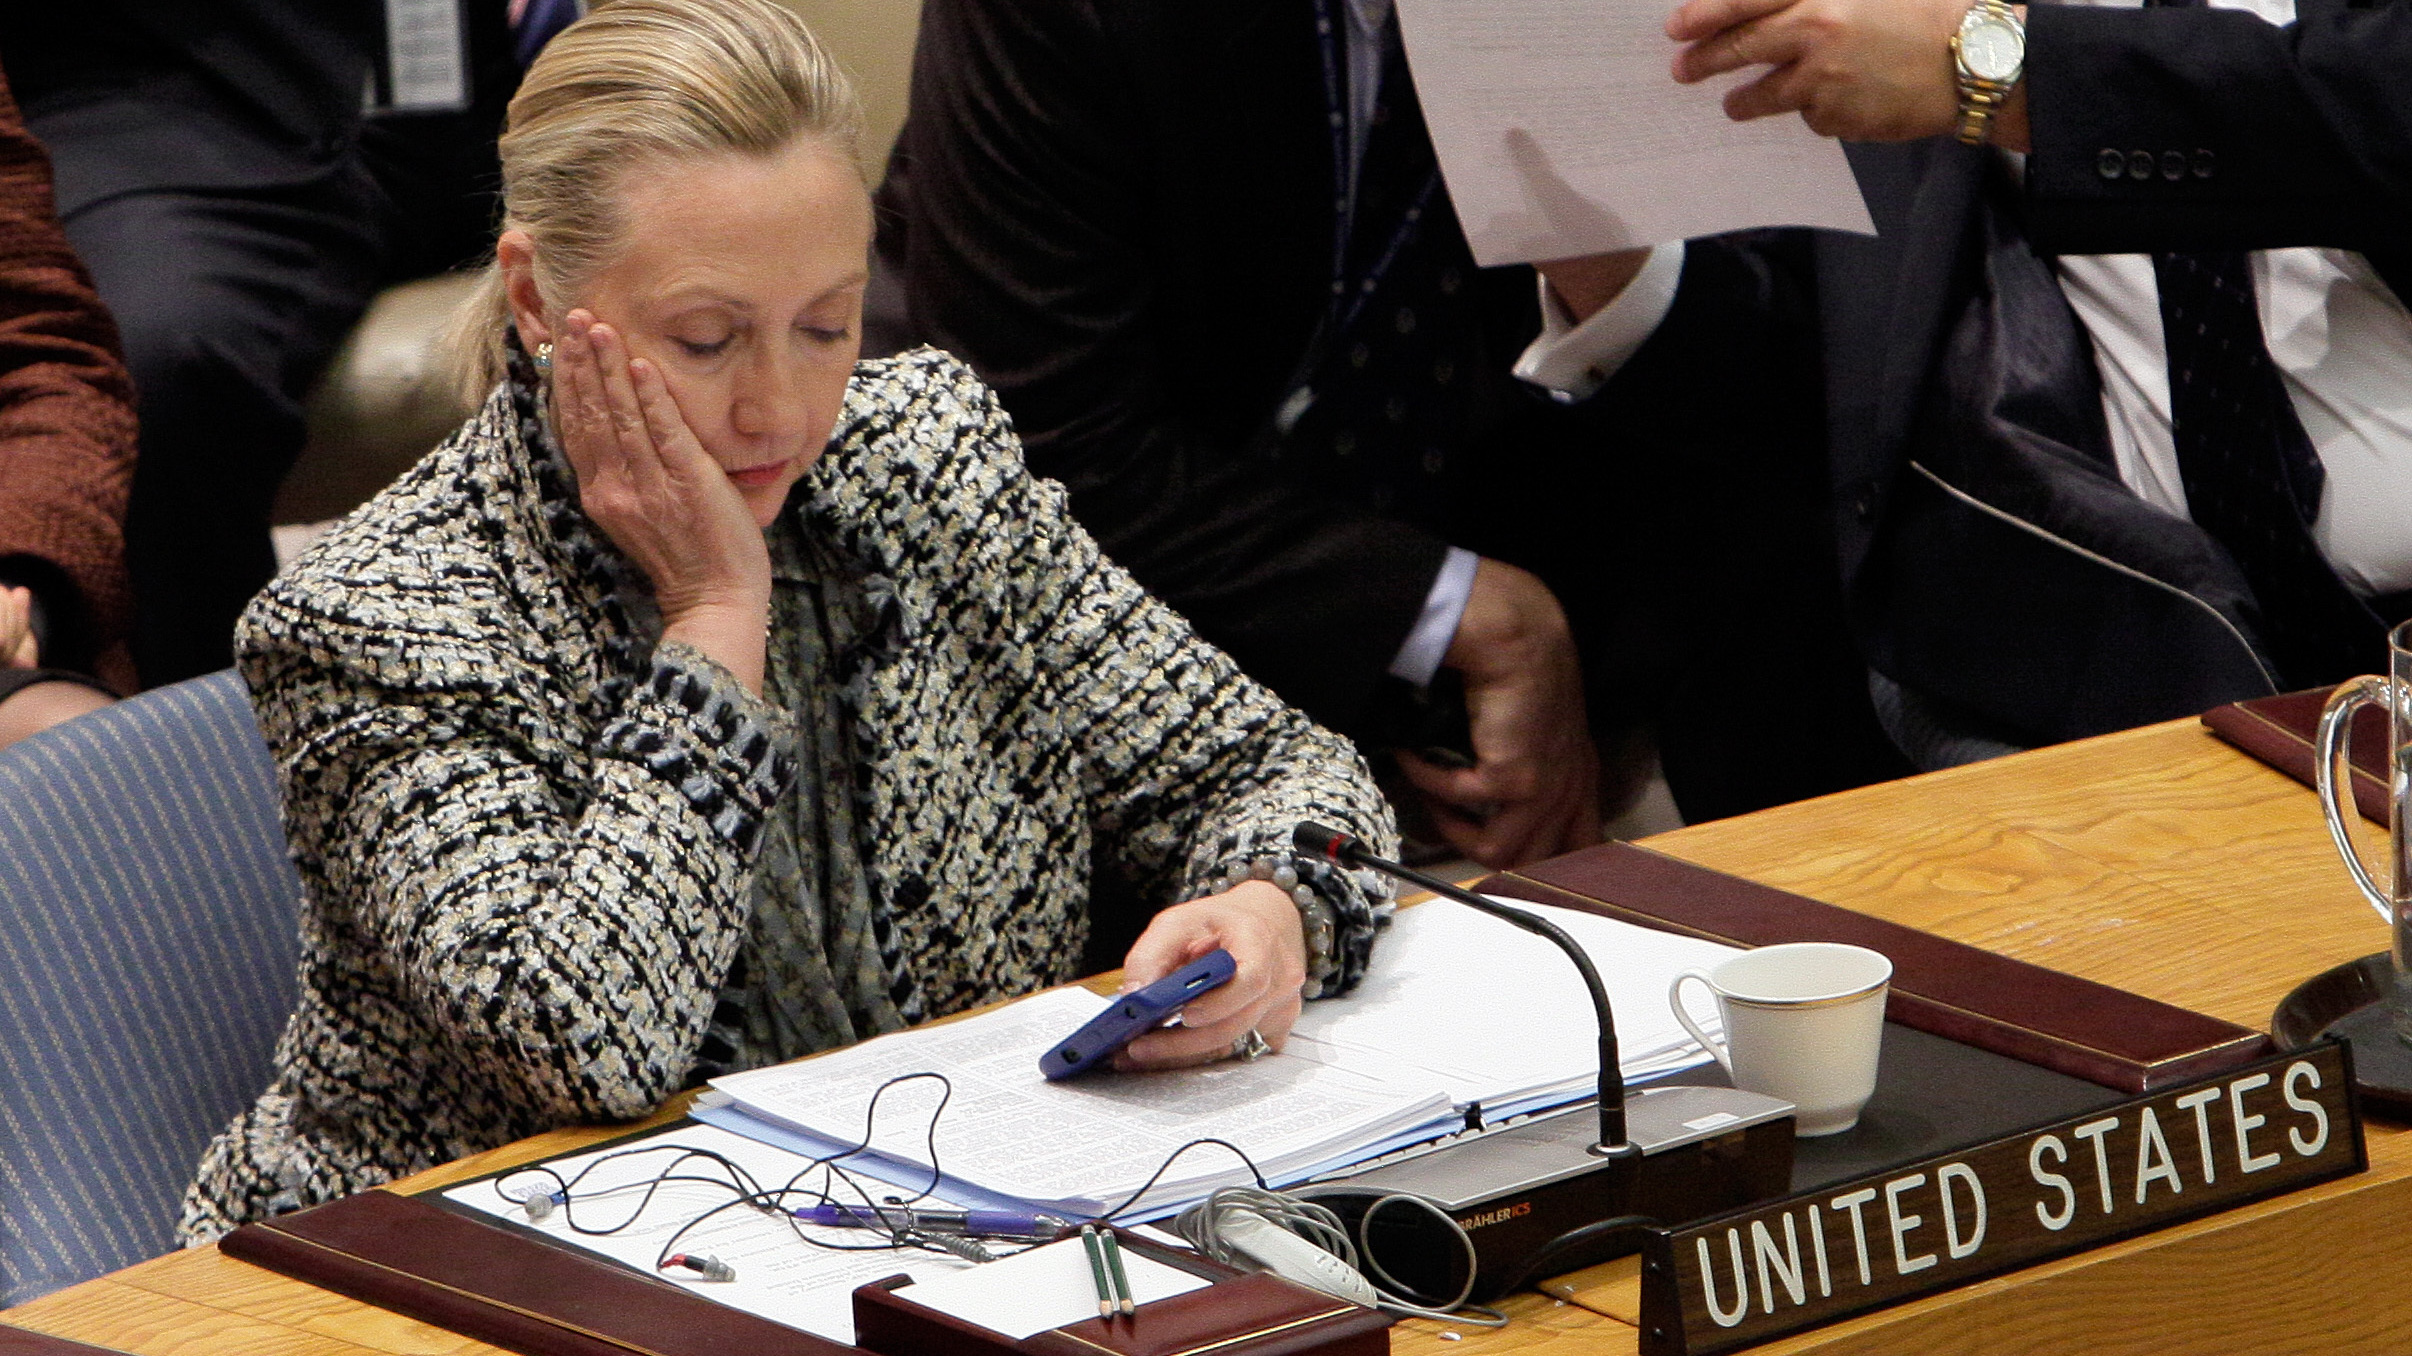 Hillary Clinton, then secretary of state, checks her cellphone after her address at a United Nations meeting in 2012. (Richard Drew/AP)